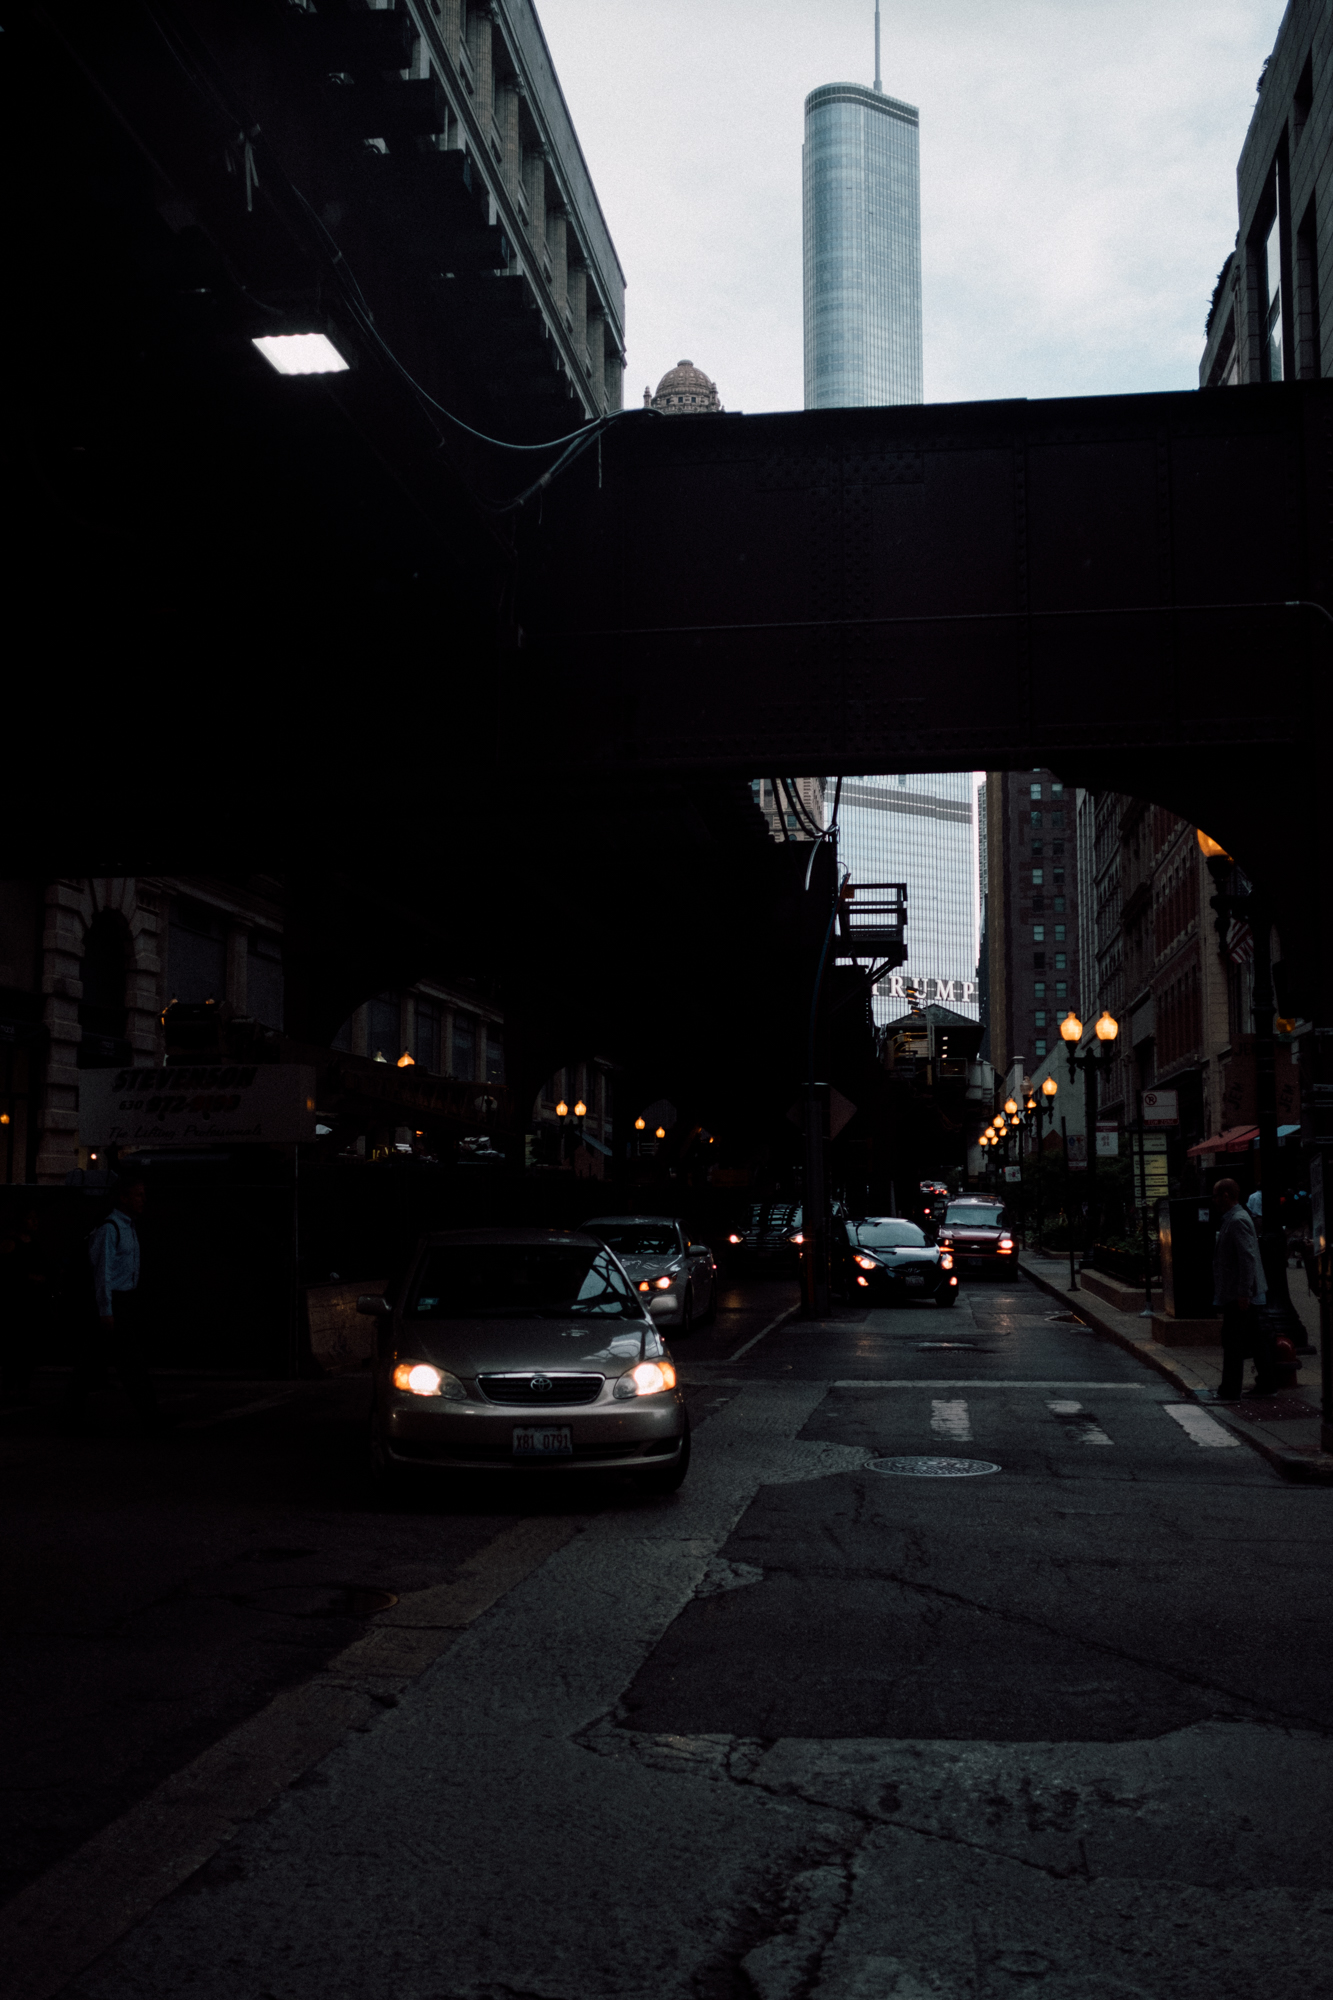 streeterville and chicago (2 of 46).jpg